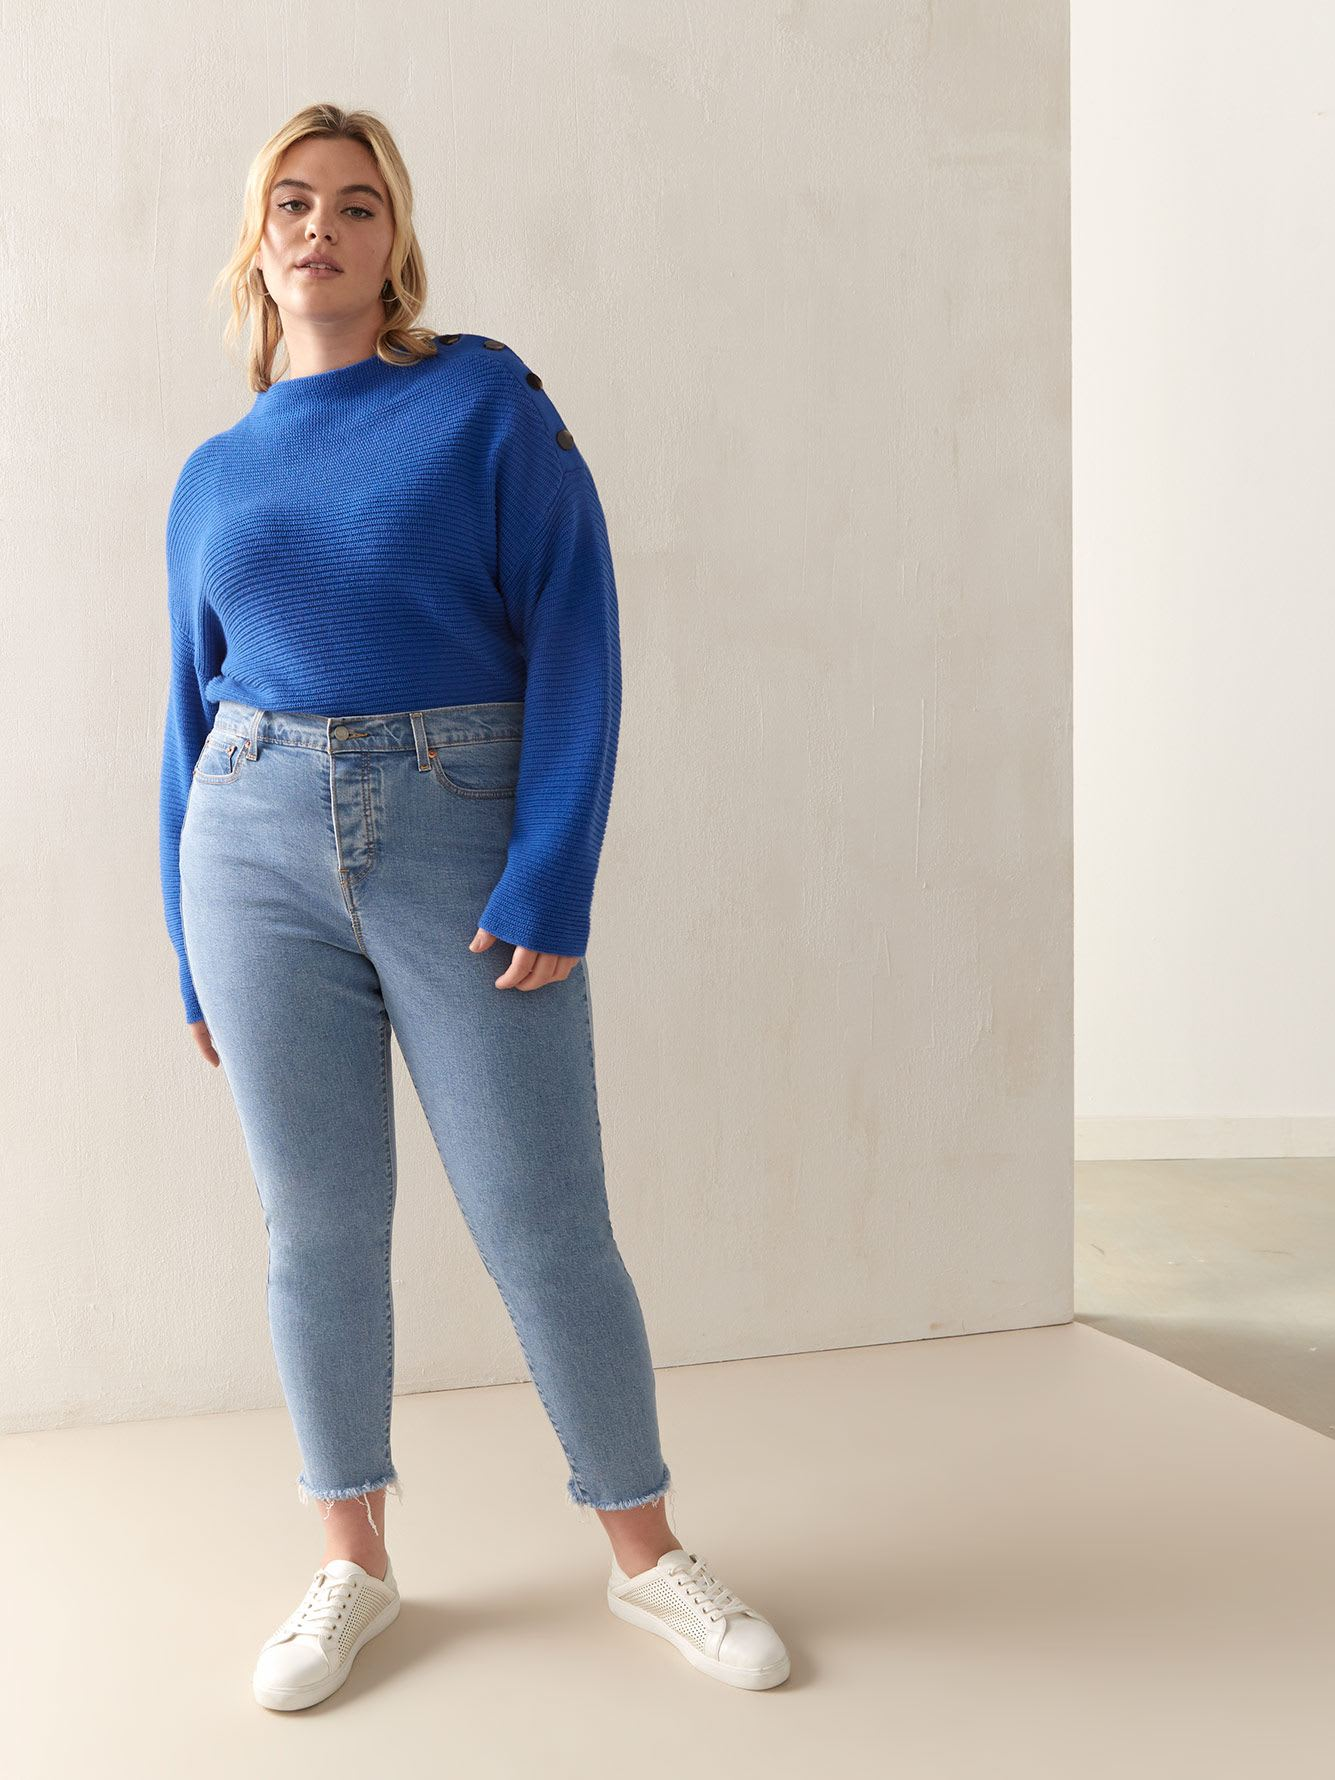 High-Waisted Wedgie Jean - Levi's Premium